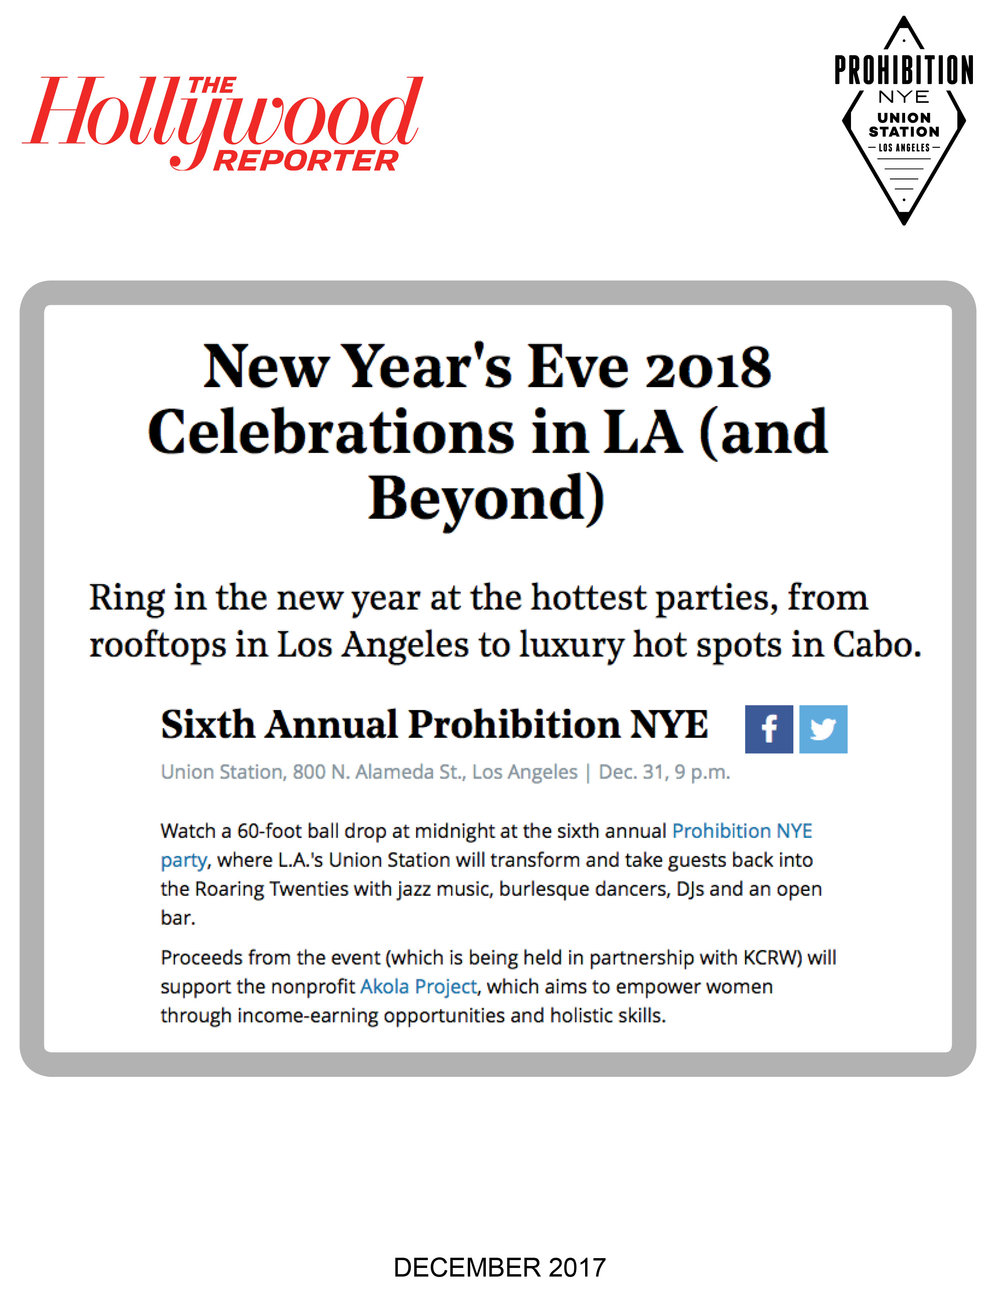 ProhibitionNYE_TheHollywoodReporter_Dec2017.jpg